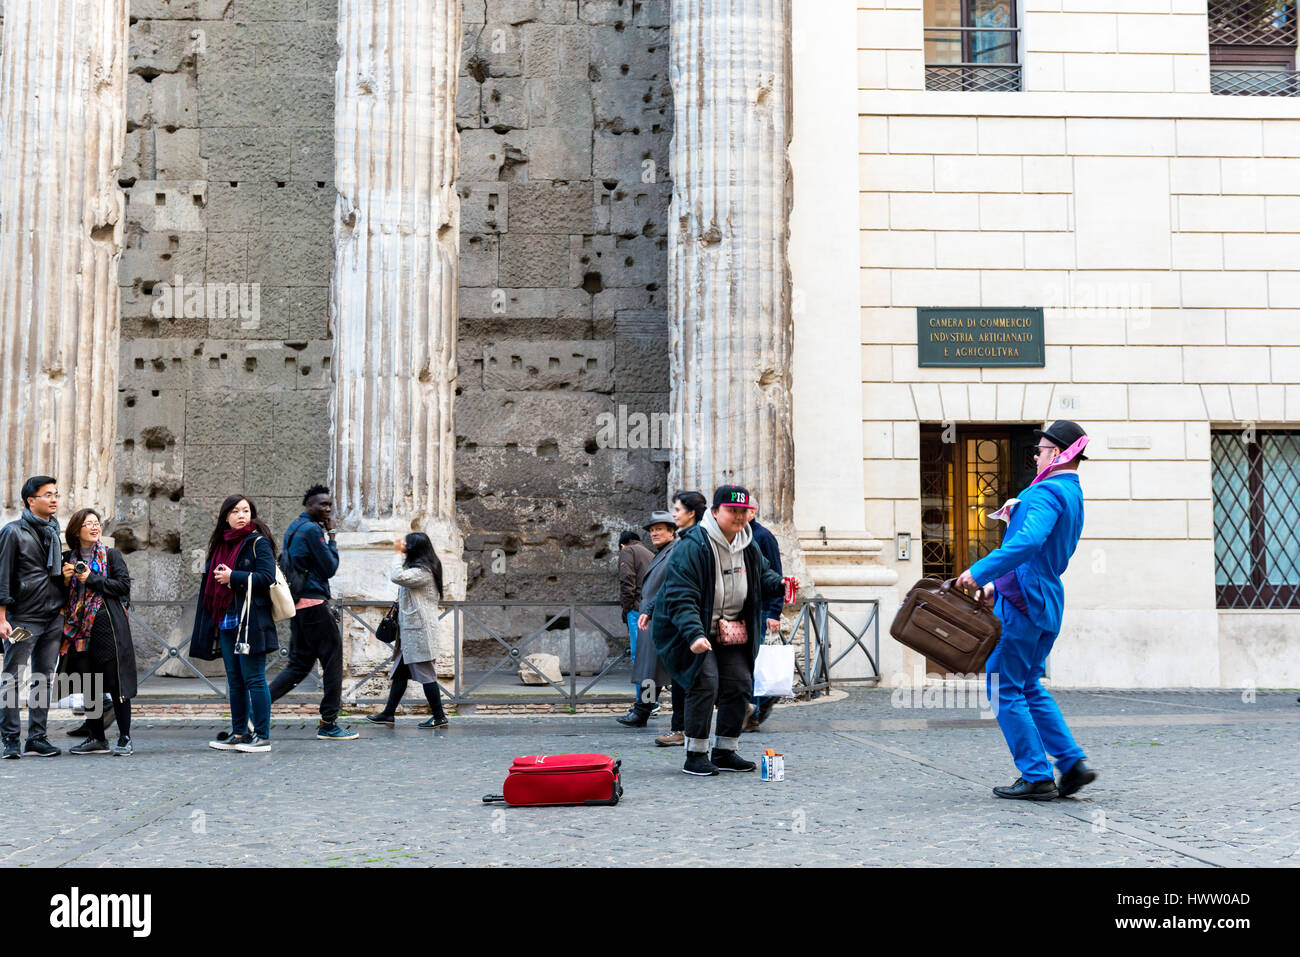 Rome, Italy - February 3, 2017:Mime artist performing in Piazza di Pietra, a tourist drops a coin for him,  on February - Stock Image